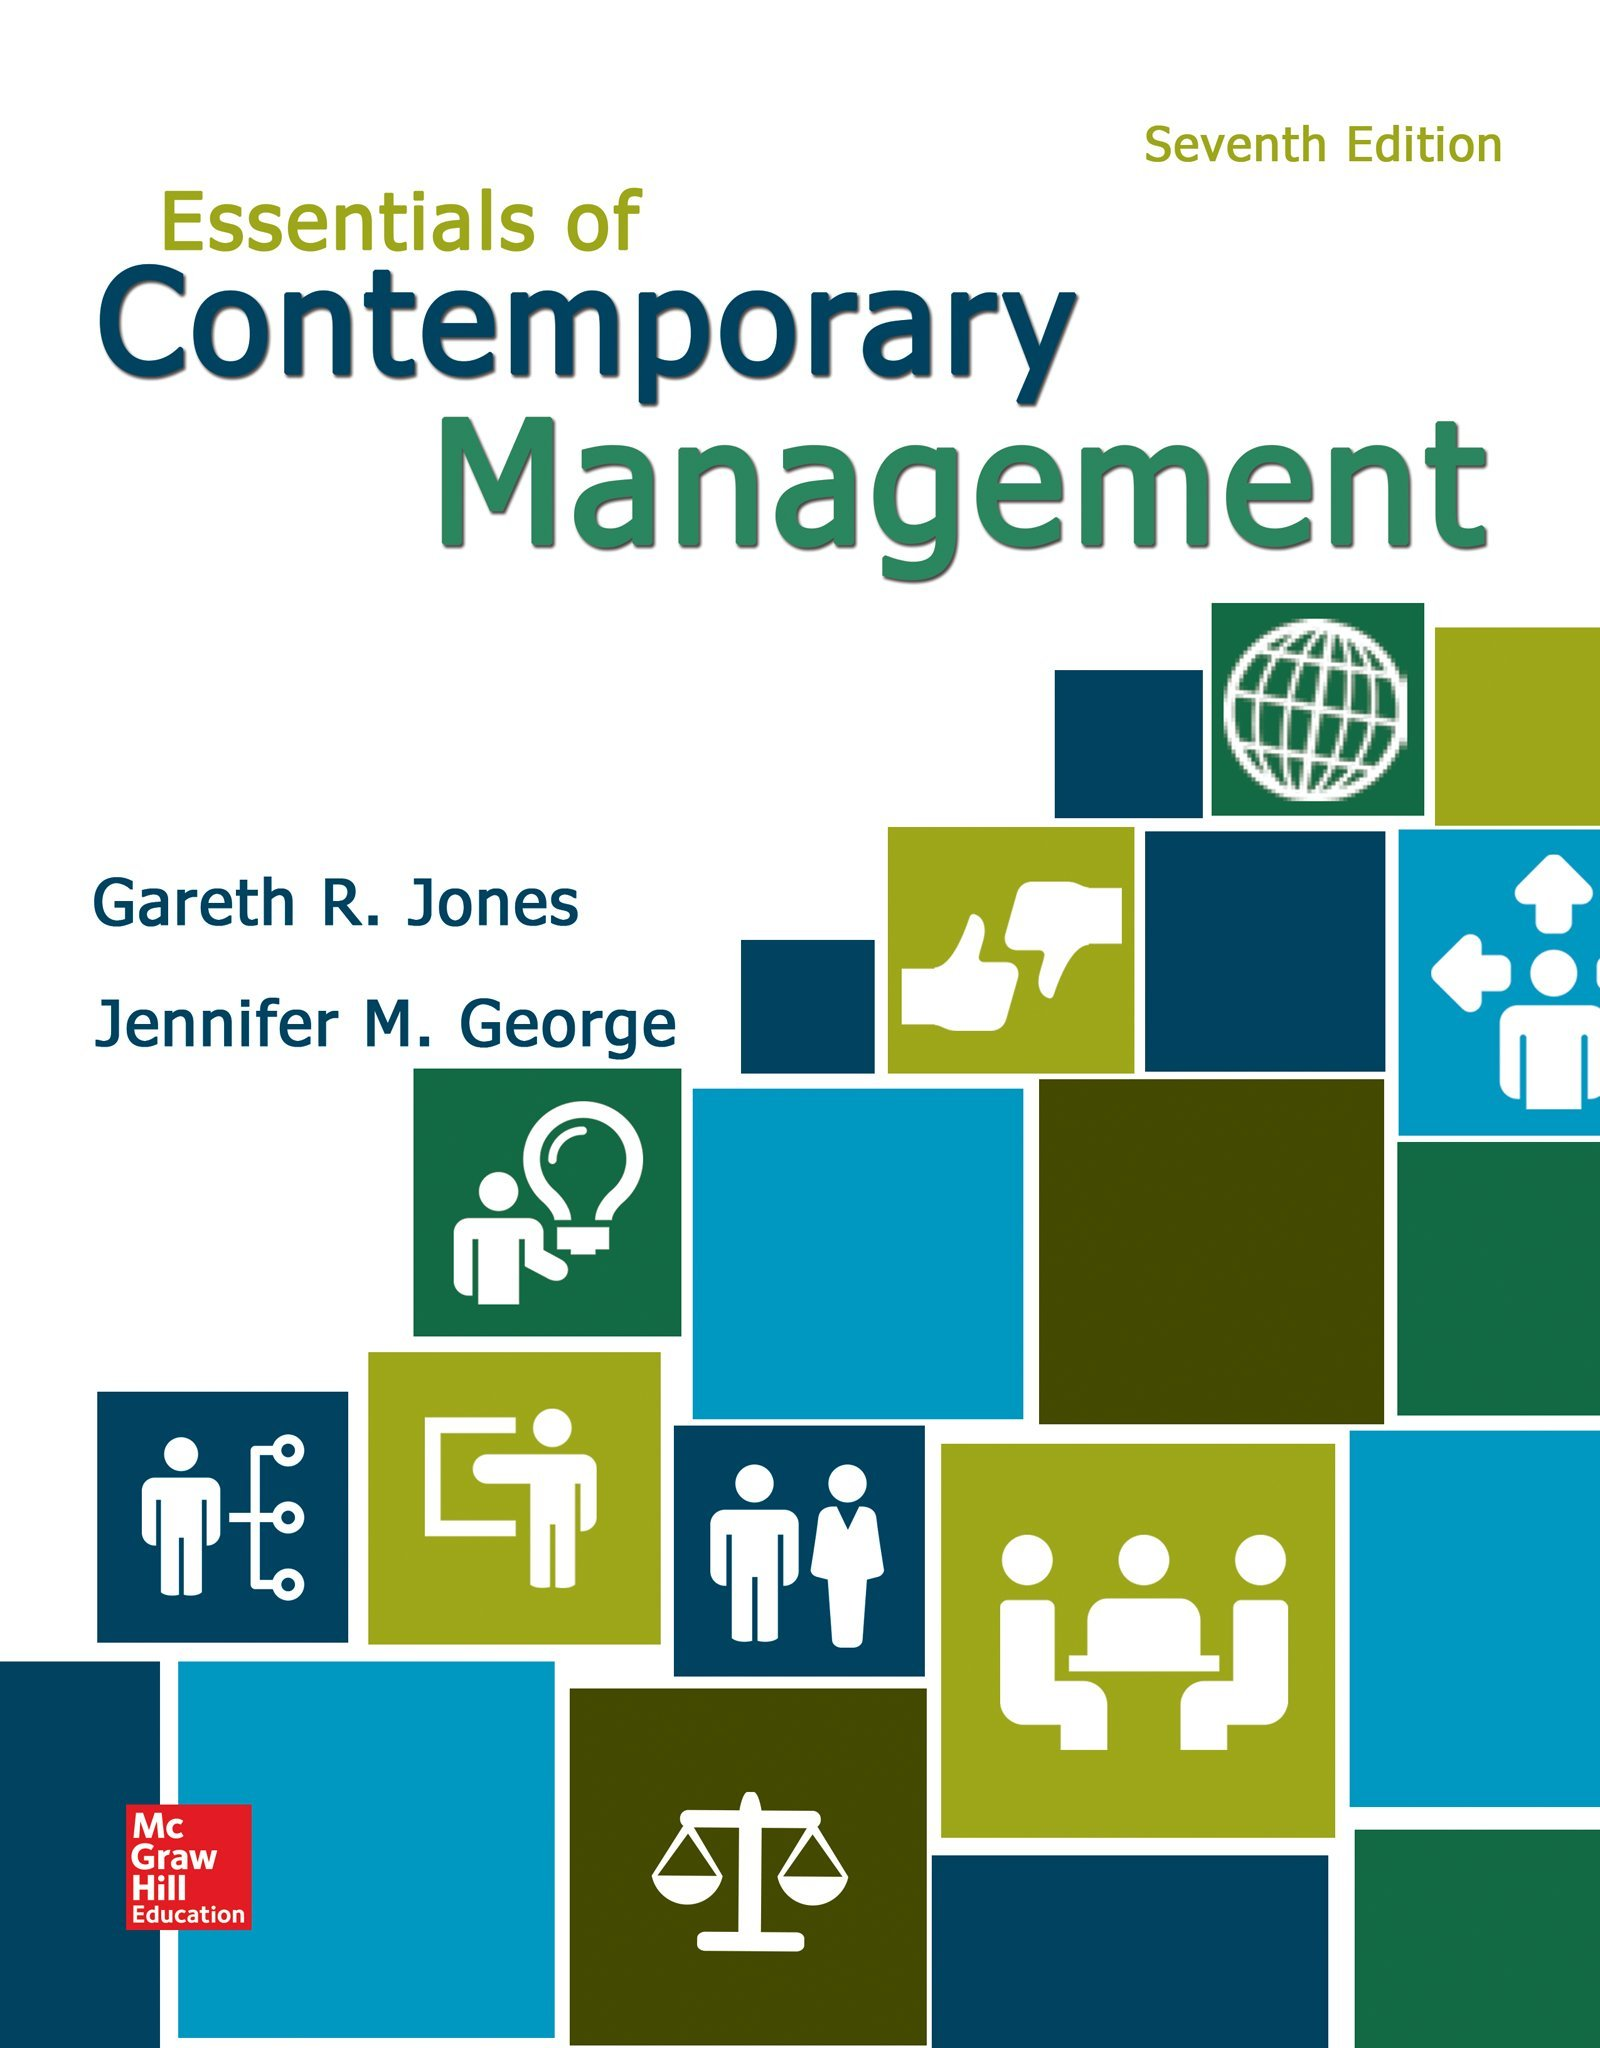 Essentials of Contemporary Management by McGraw-Hill Education